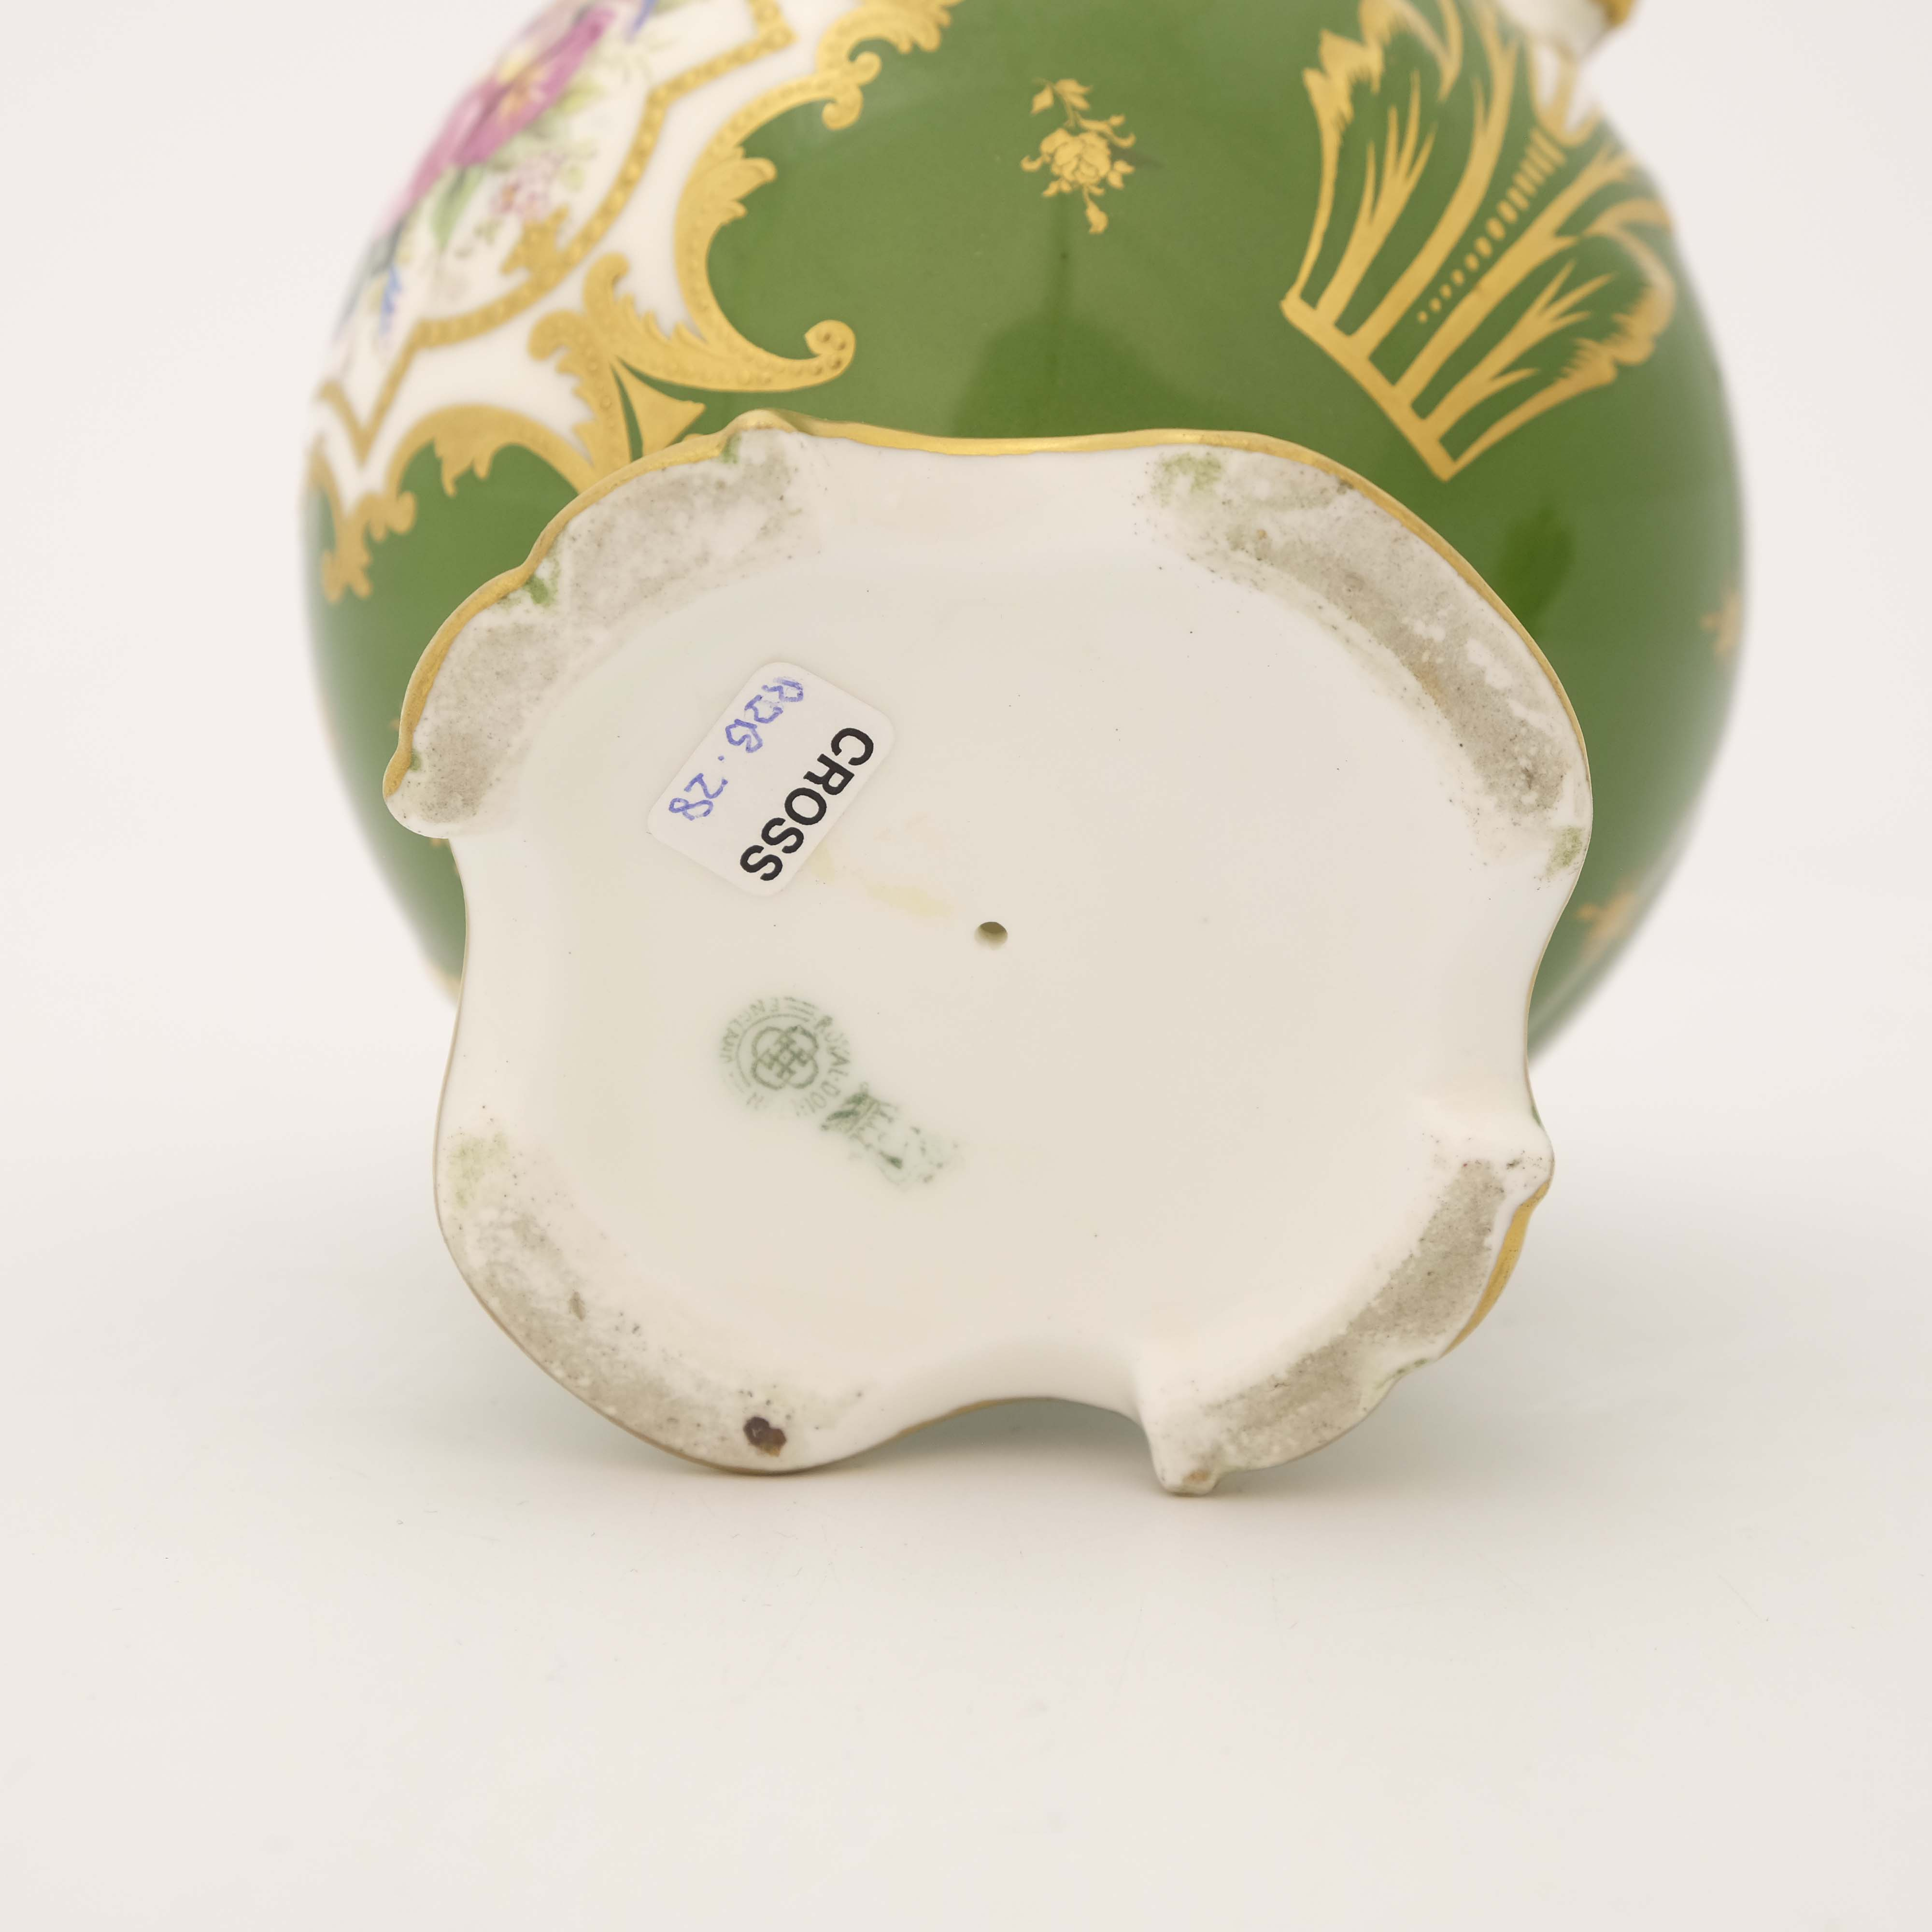 Edwin Wood for Royal Doulton, a floral painted twin handled vase - Image 5 of 7